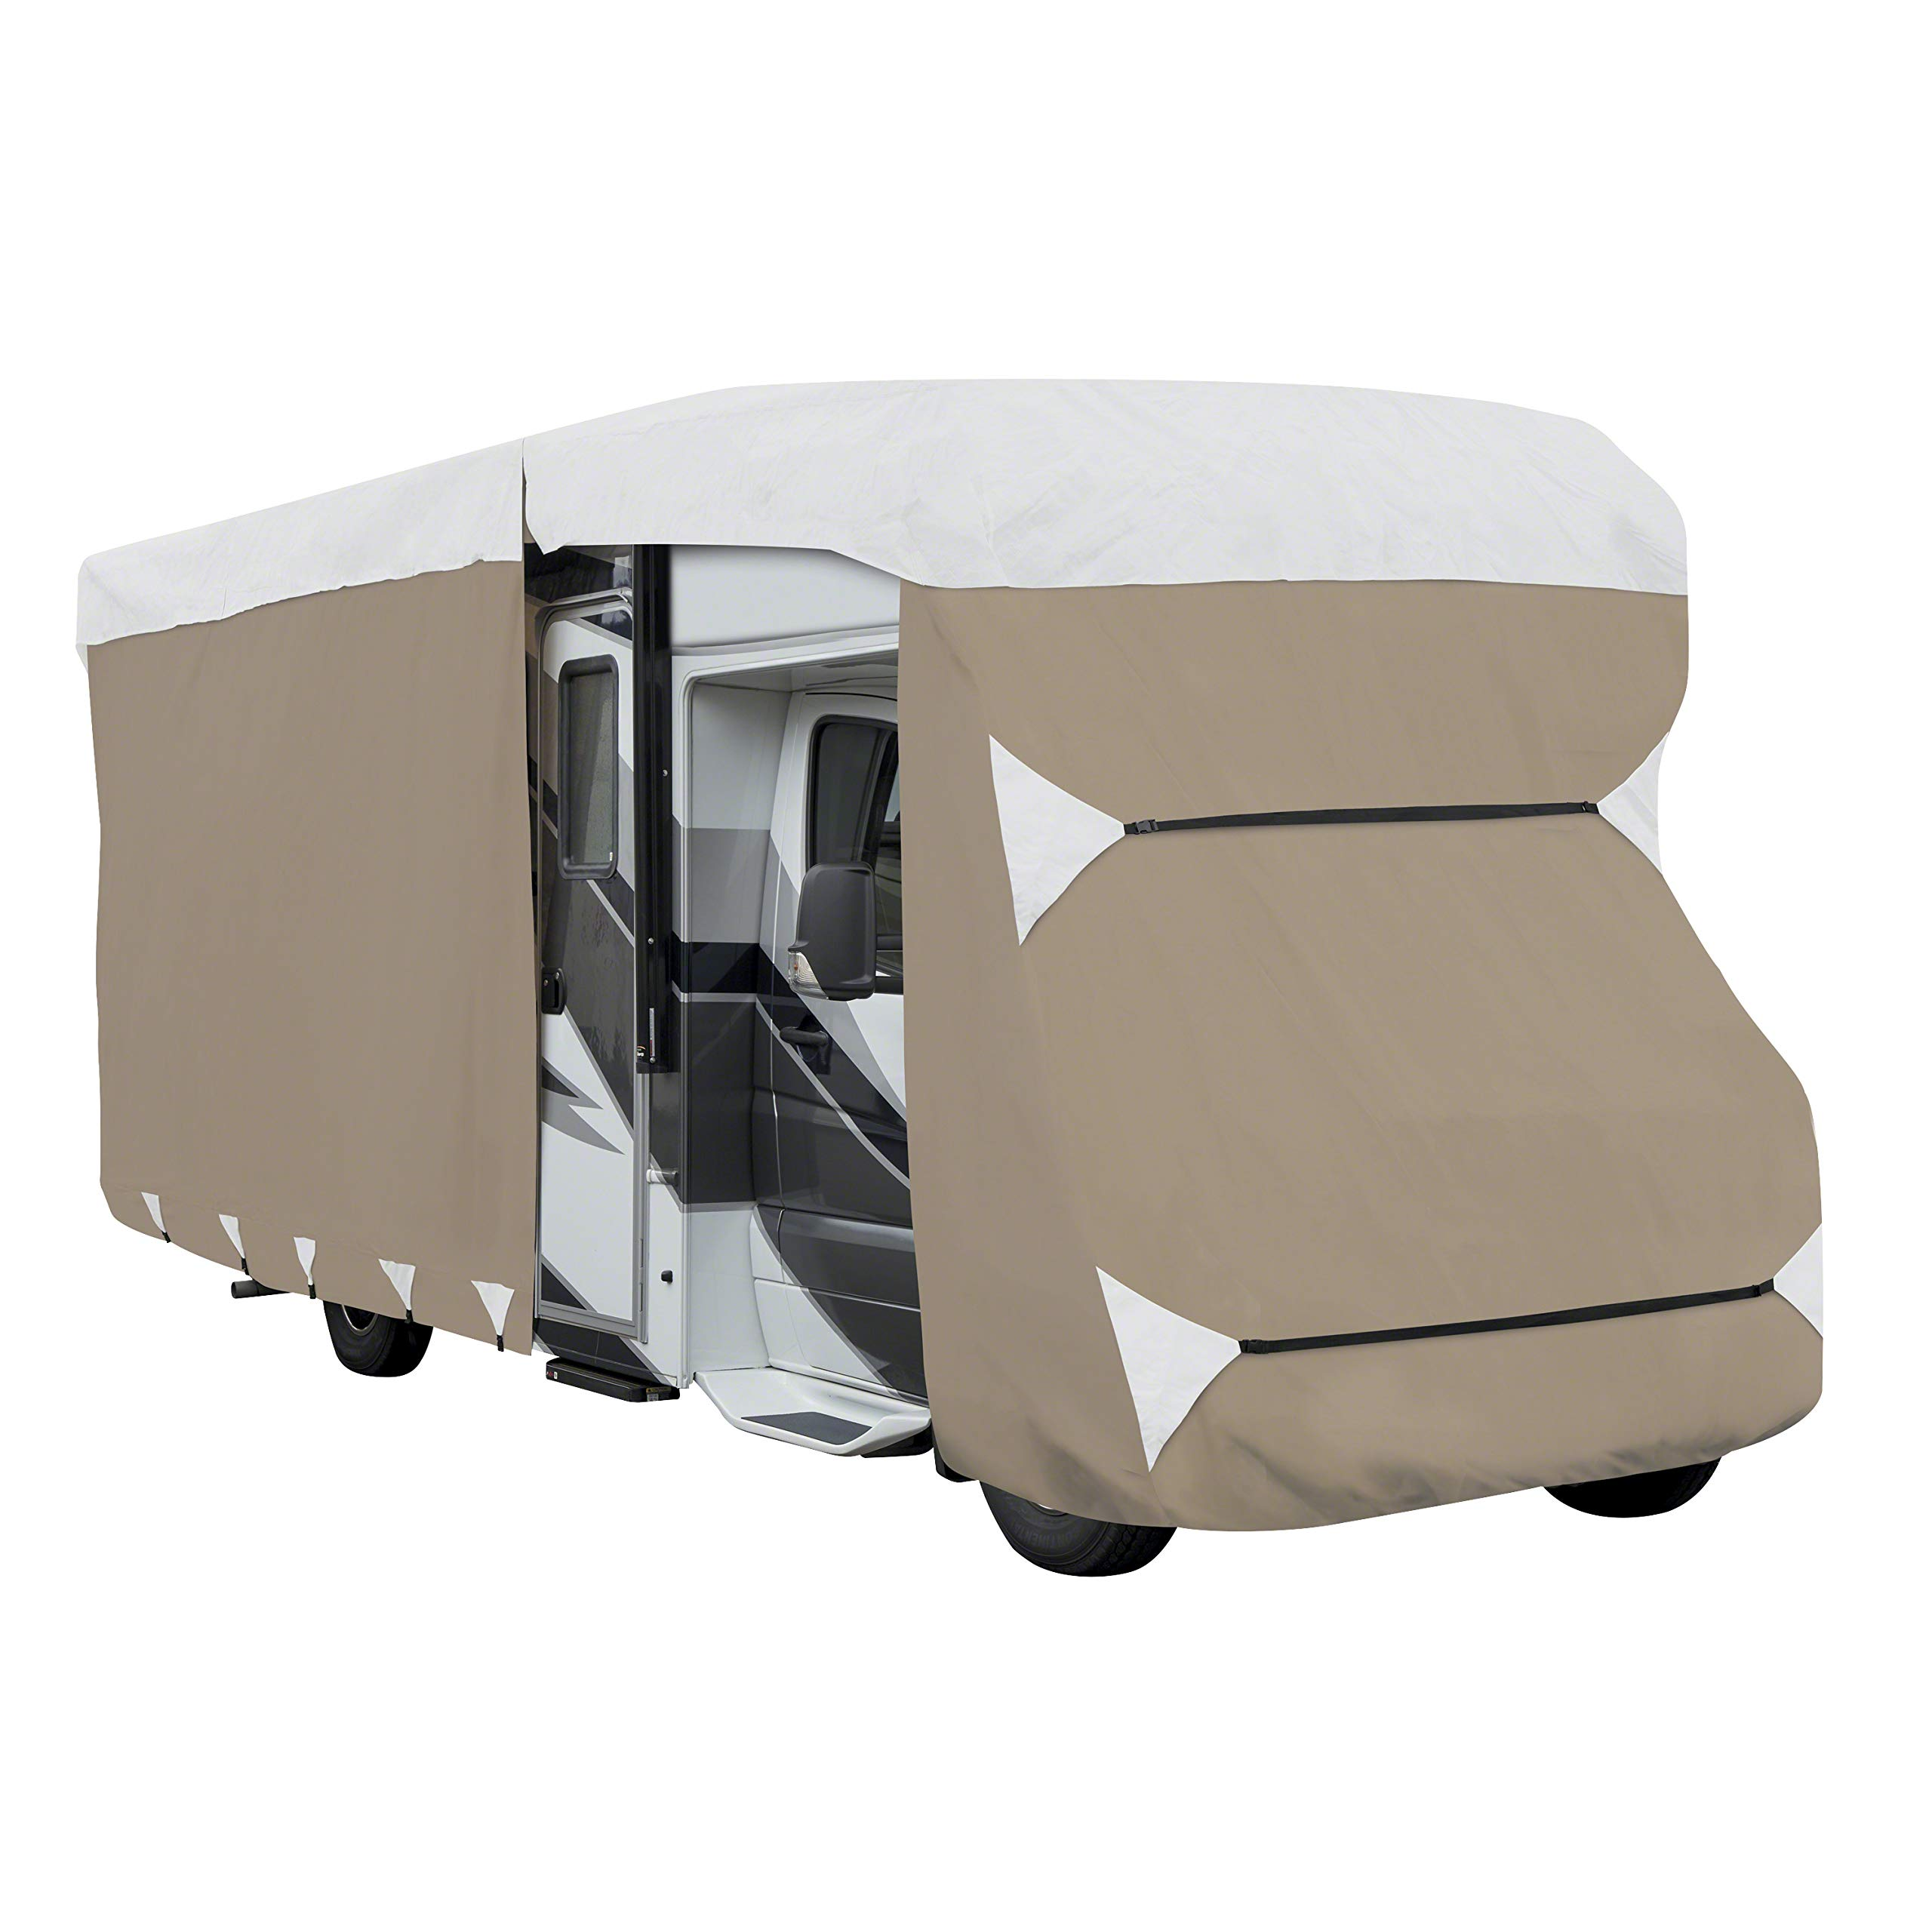 AmazonBasics Class C RV Cover, 23-26 Foot by AmazonBasics